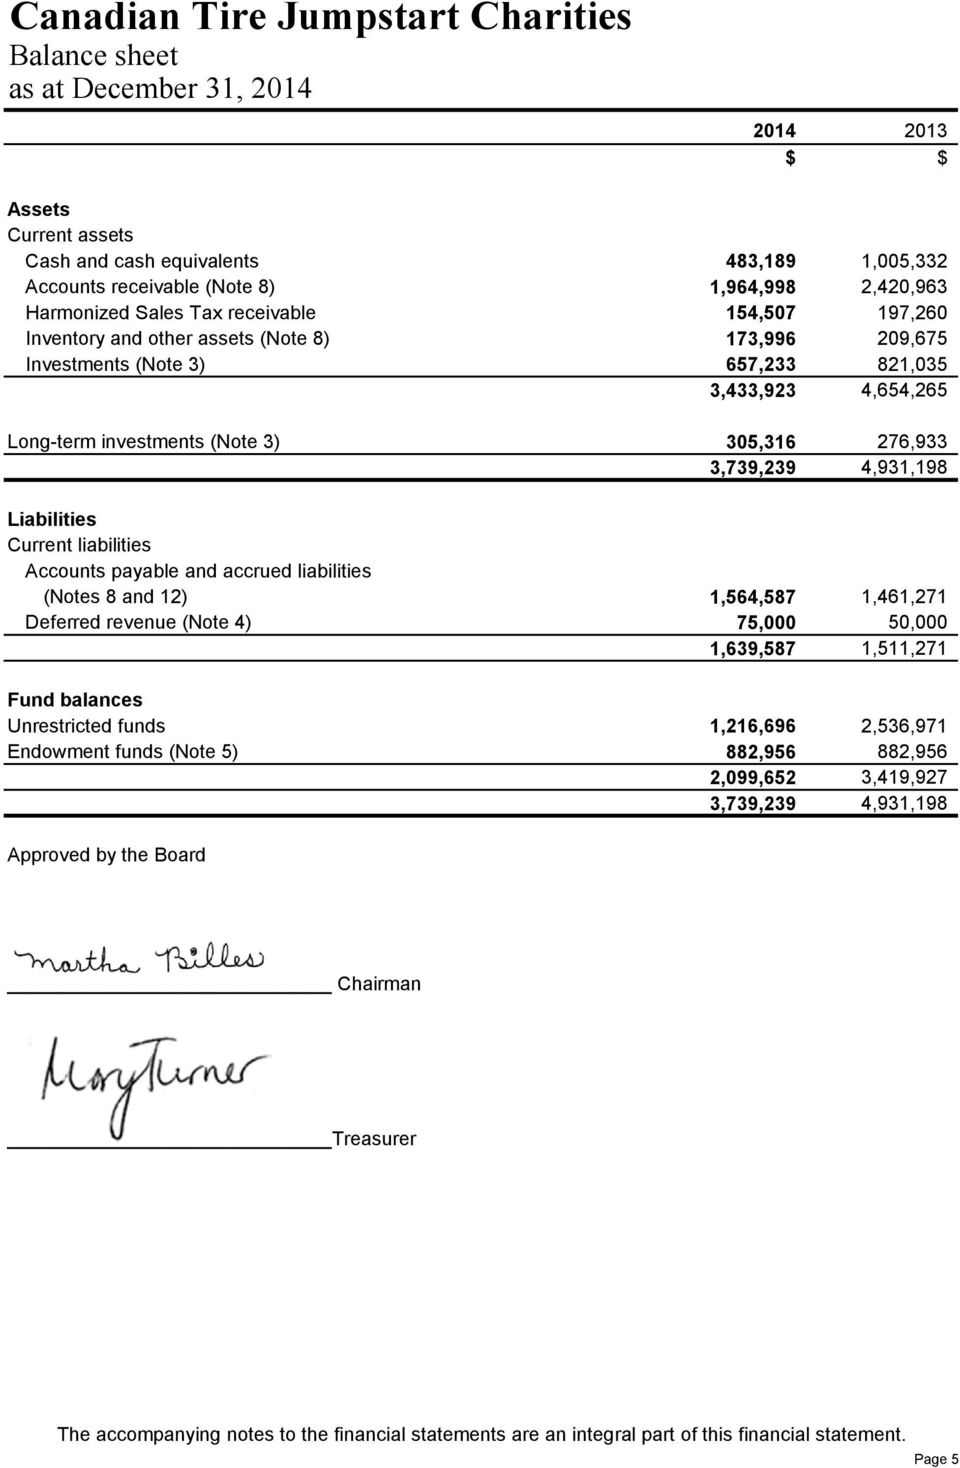 Accounts payable and accrued liabilities (Notes 8 and 12) 1,564,587 1,461,271 Deferred revenue (Note 4) 75,000 50,000 1,639,587 1,511,271 Fund balances Unrestricted funds 1,216,696 2,536,971